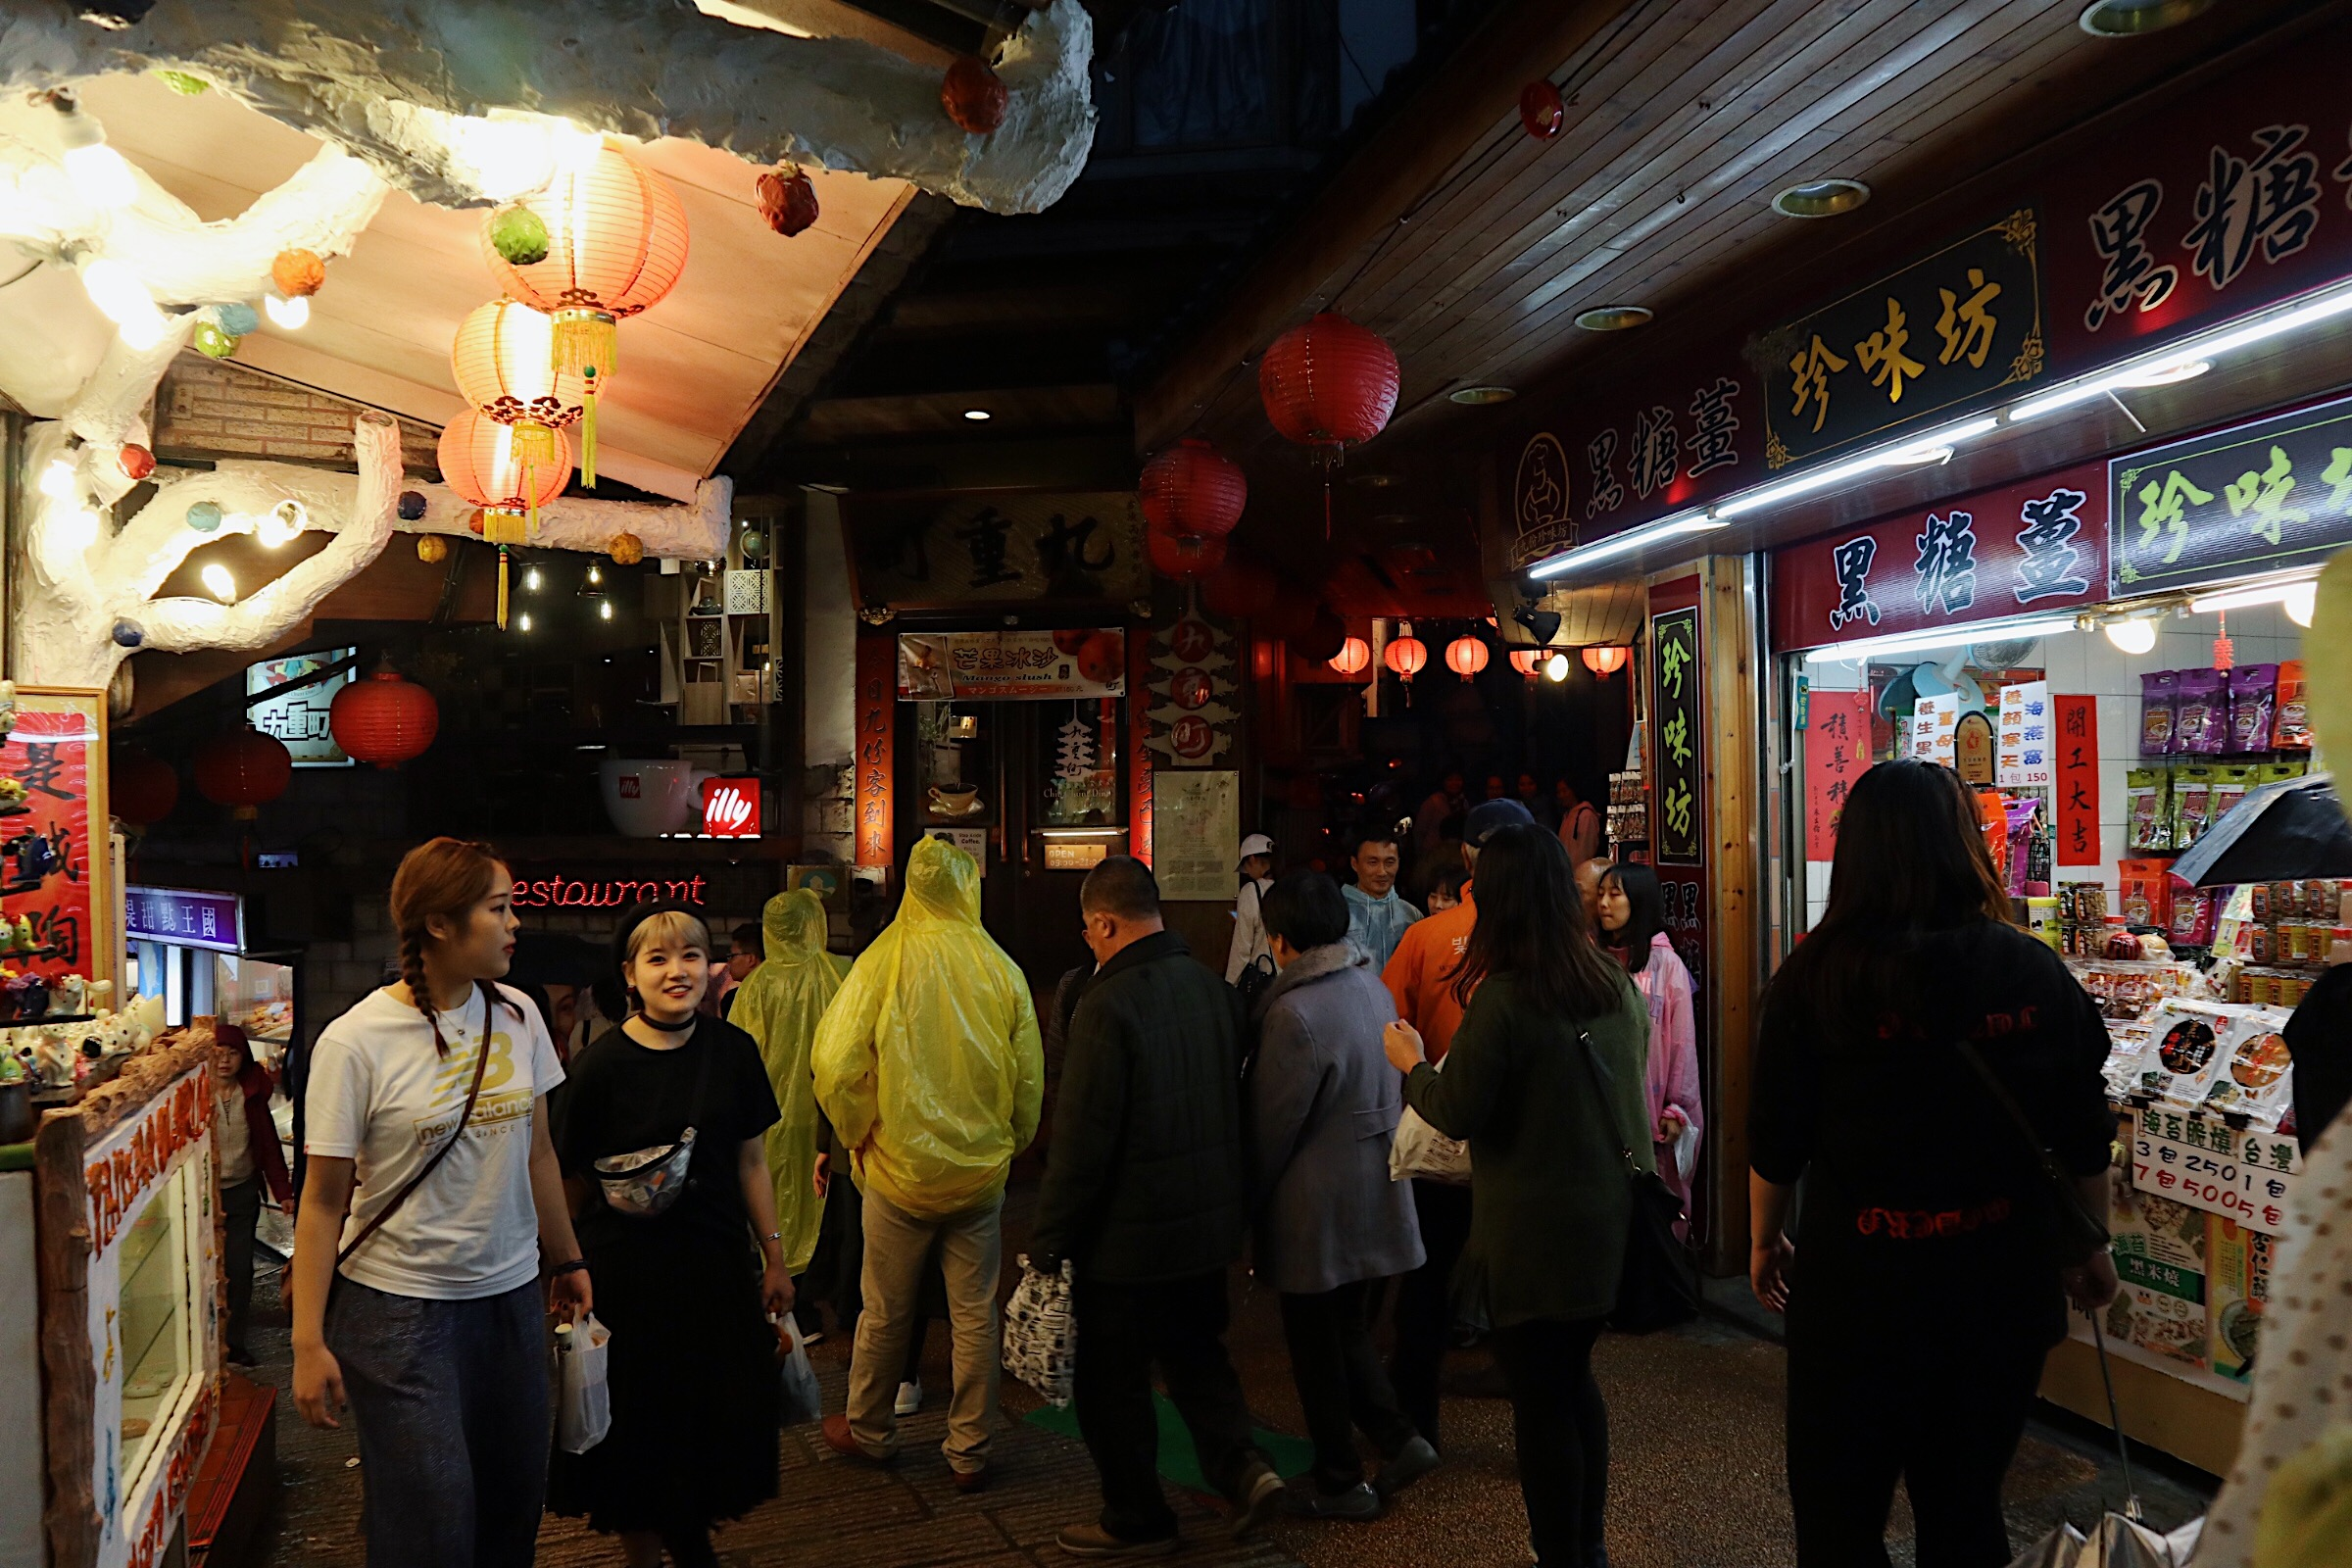 BUSY MARKETPLACE. Jiufen Old Street is crowded with people especially in the evening.